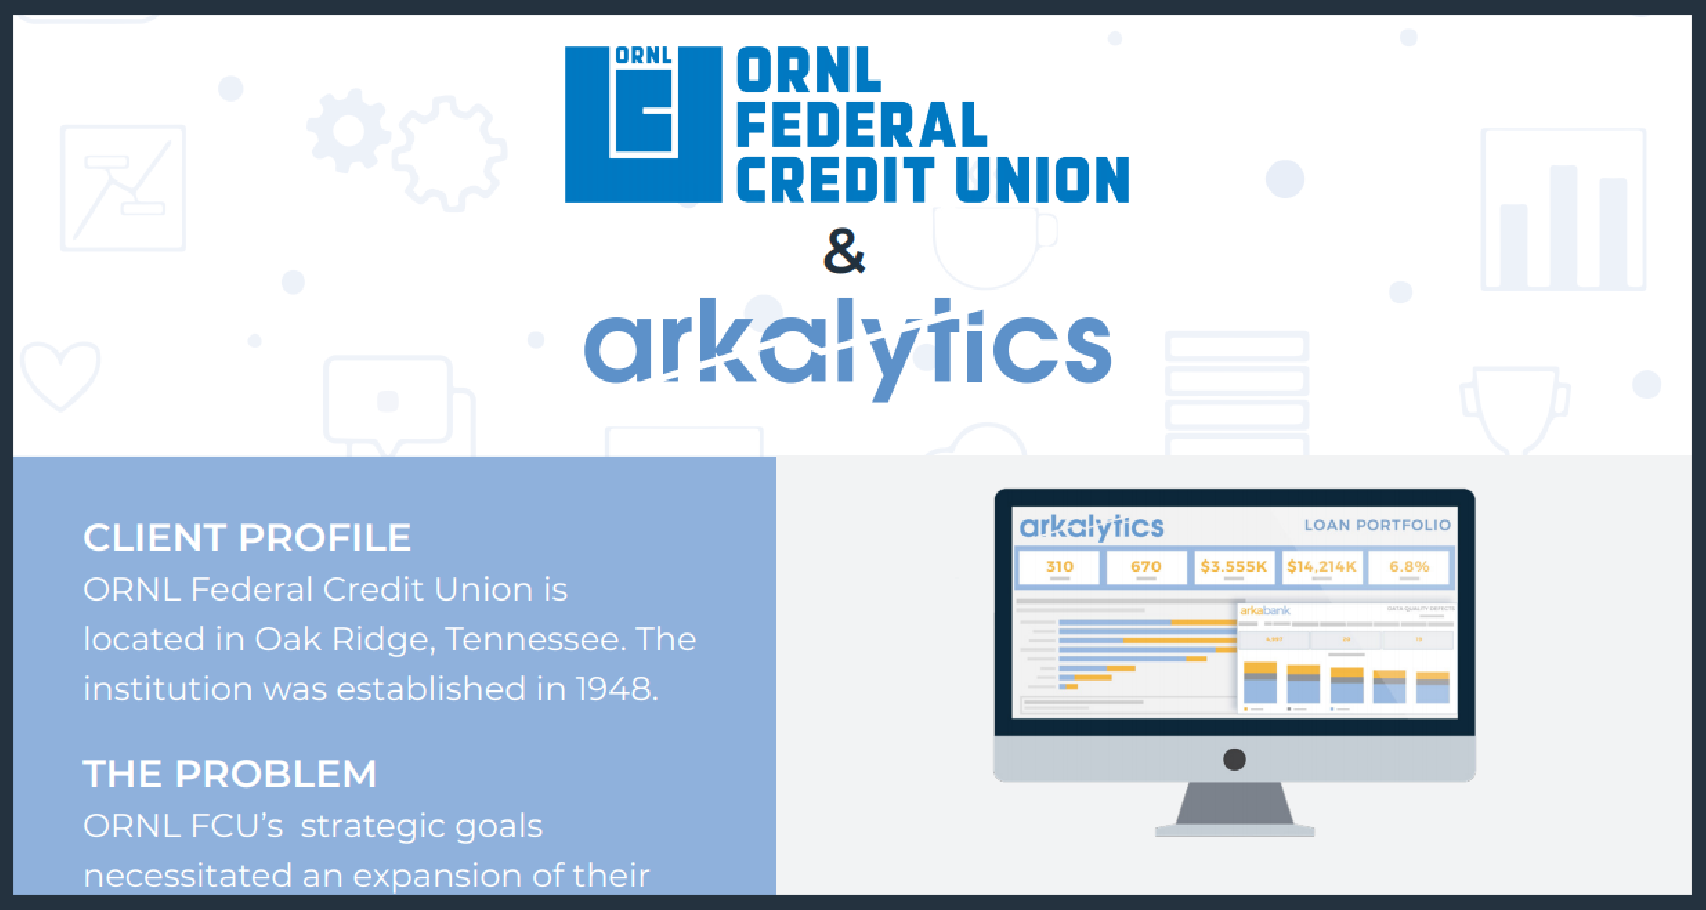 ORNL FCU Arkalytics Case Study cover image